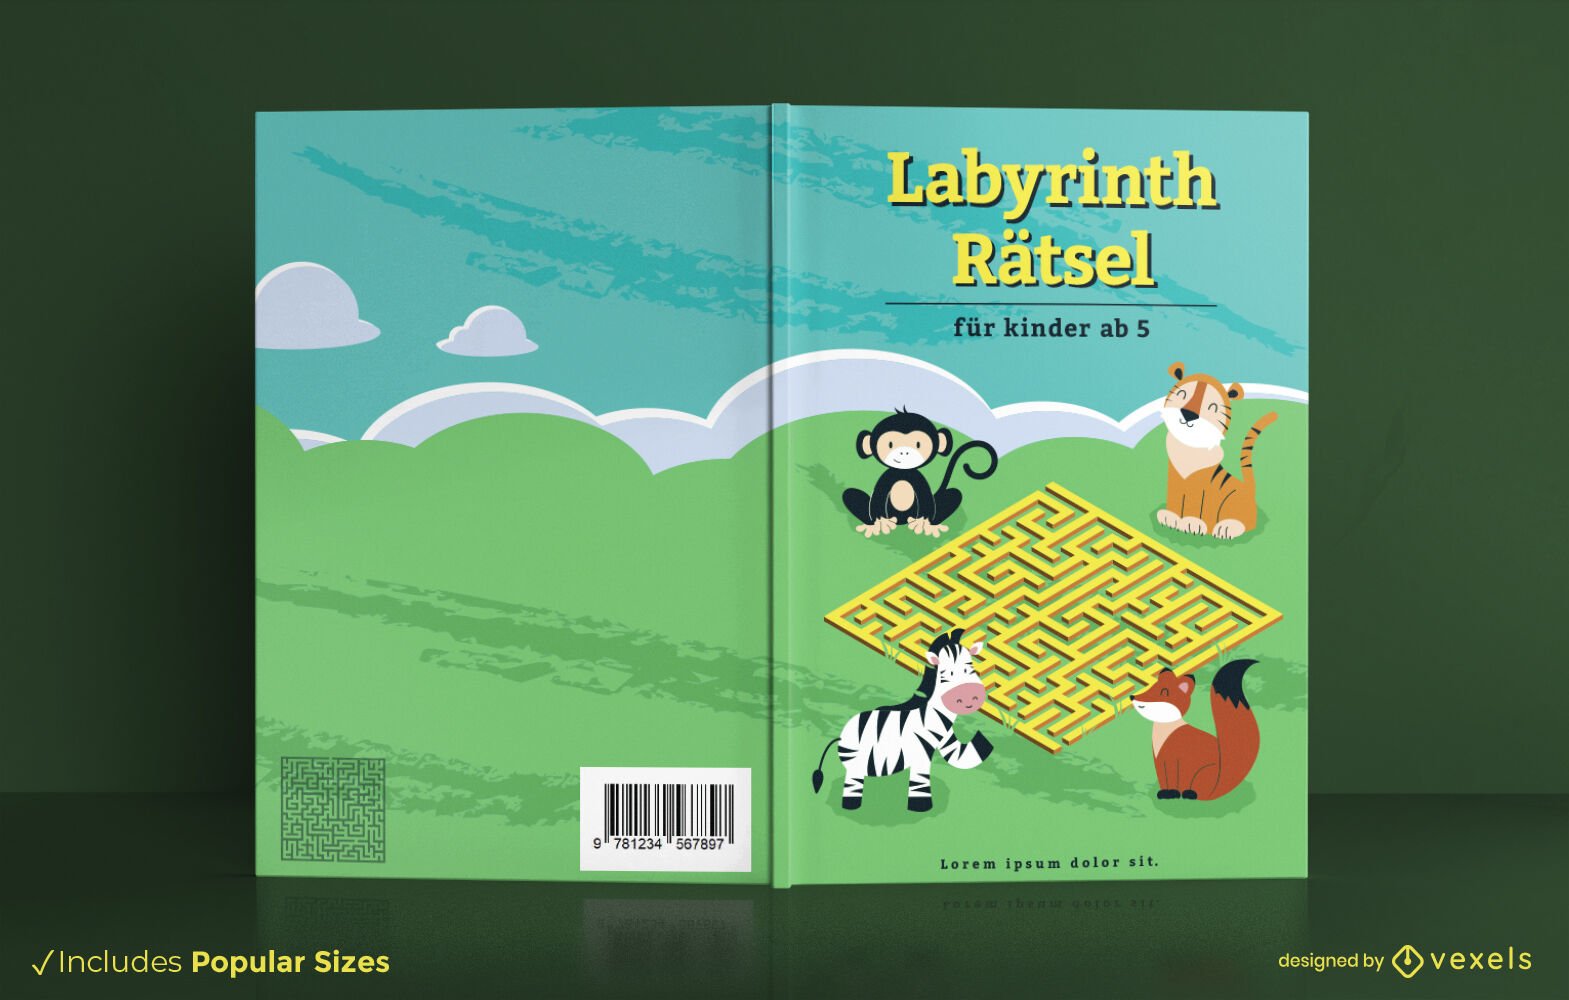 Labyrinth mystery book cover design